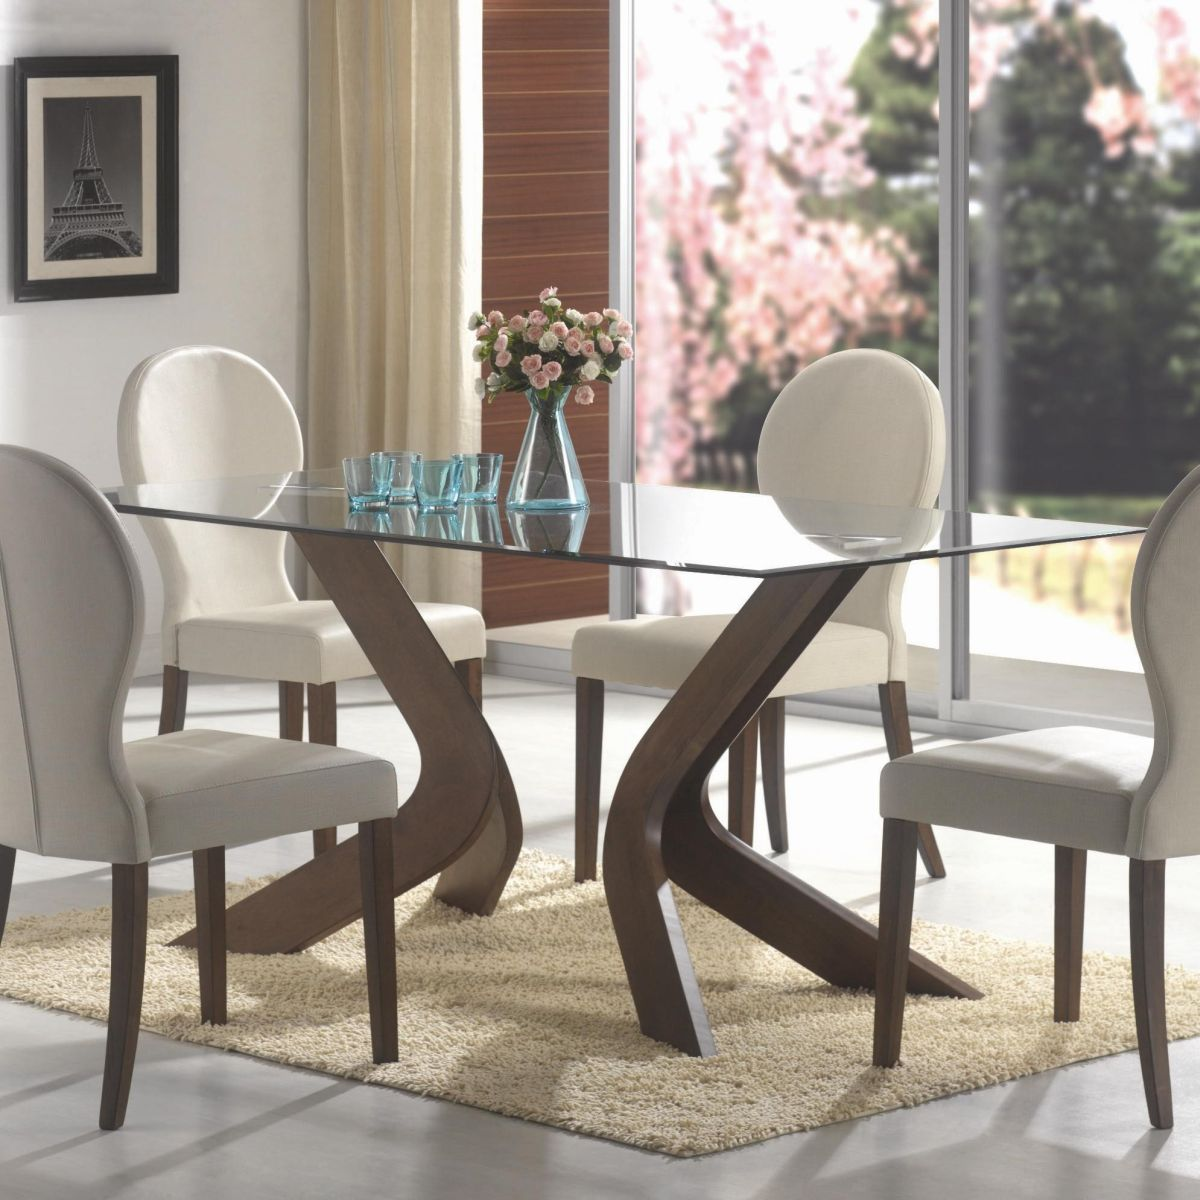 glass top dining table glass kitchen tables Oval back dining chairs and glass top table